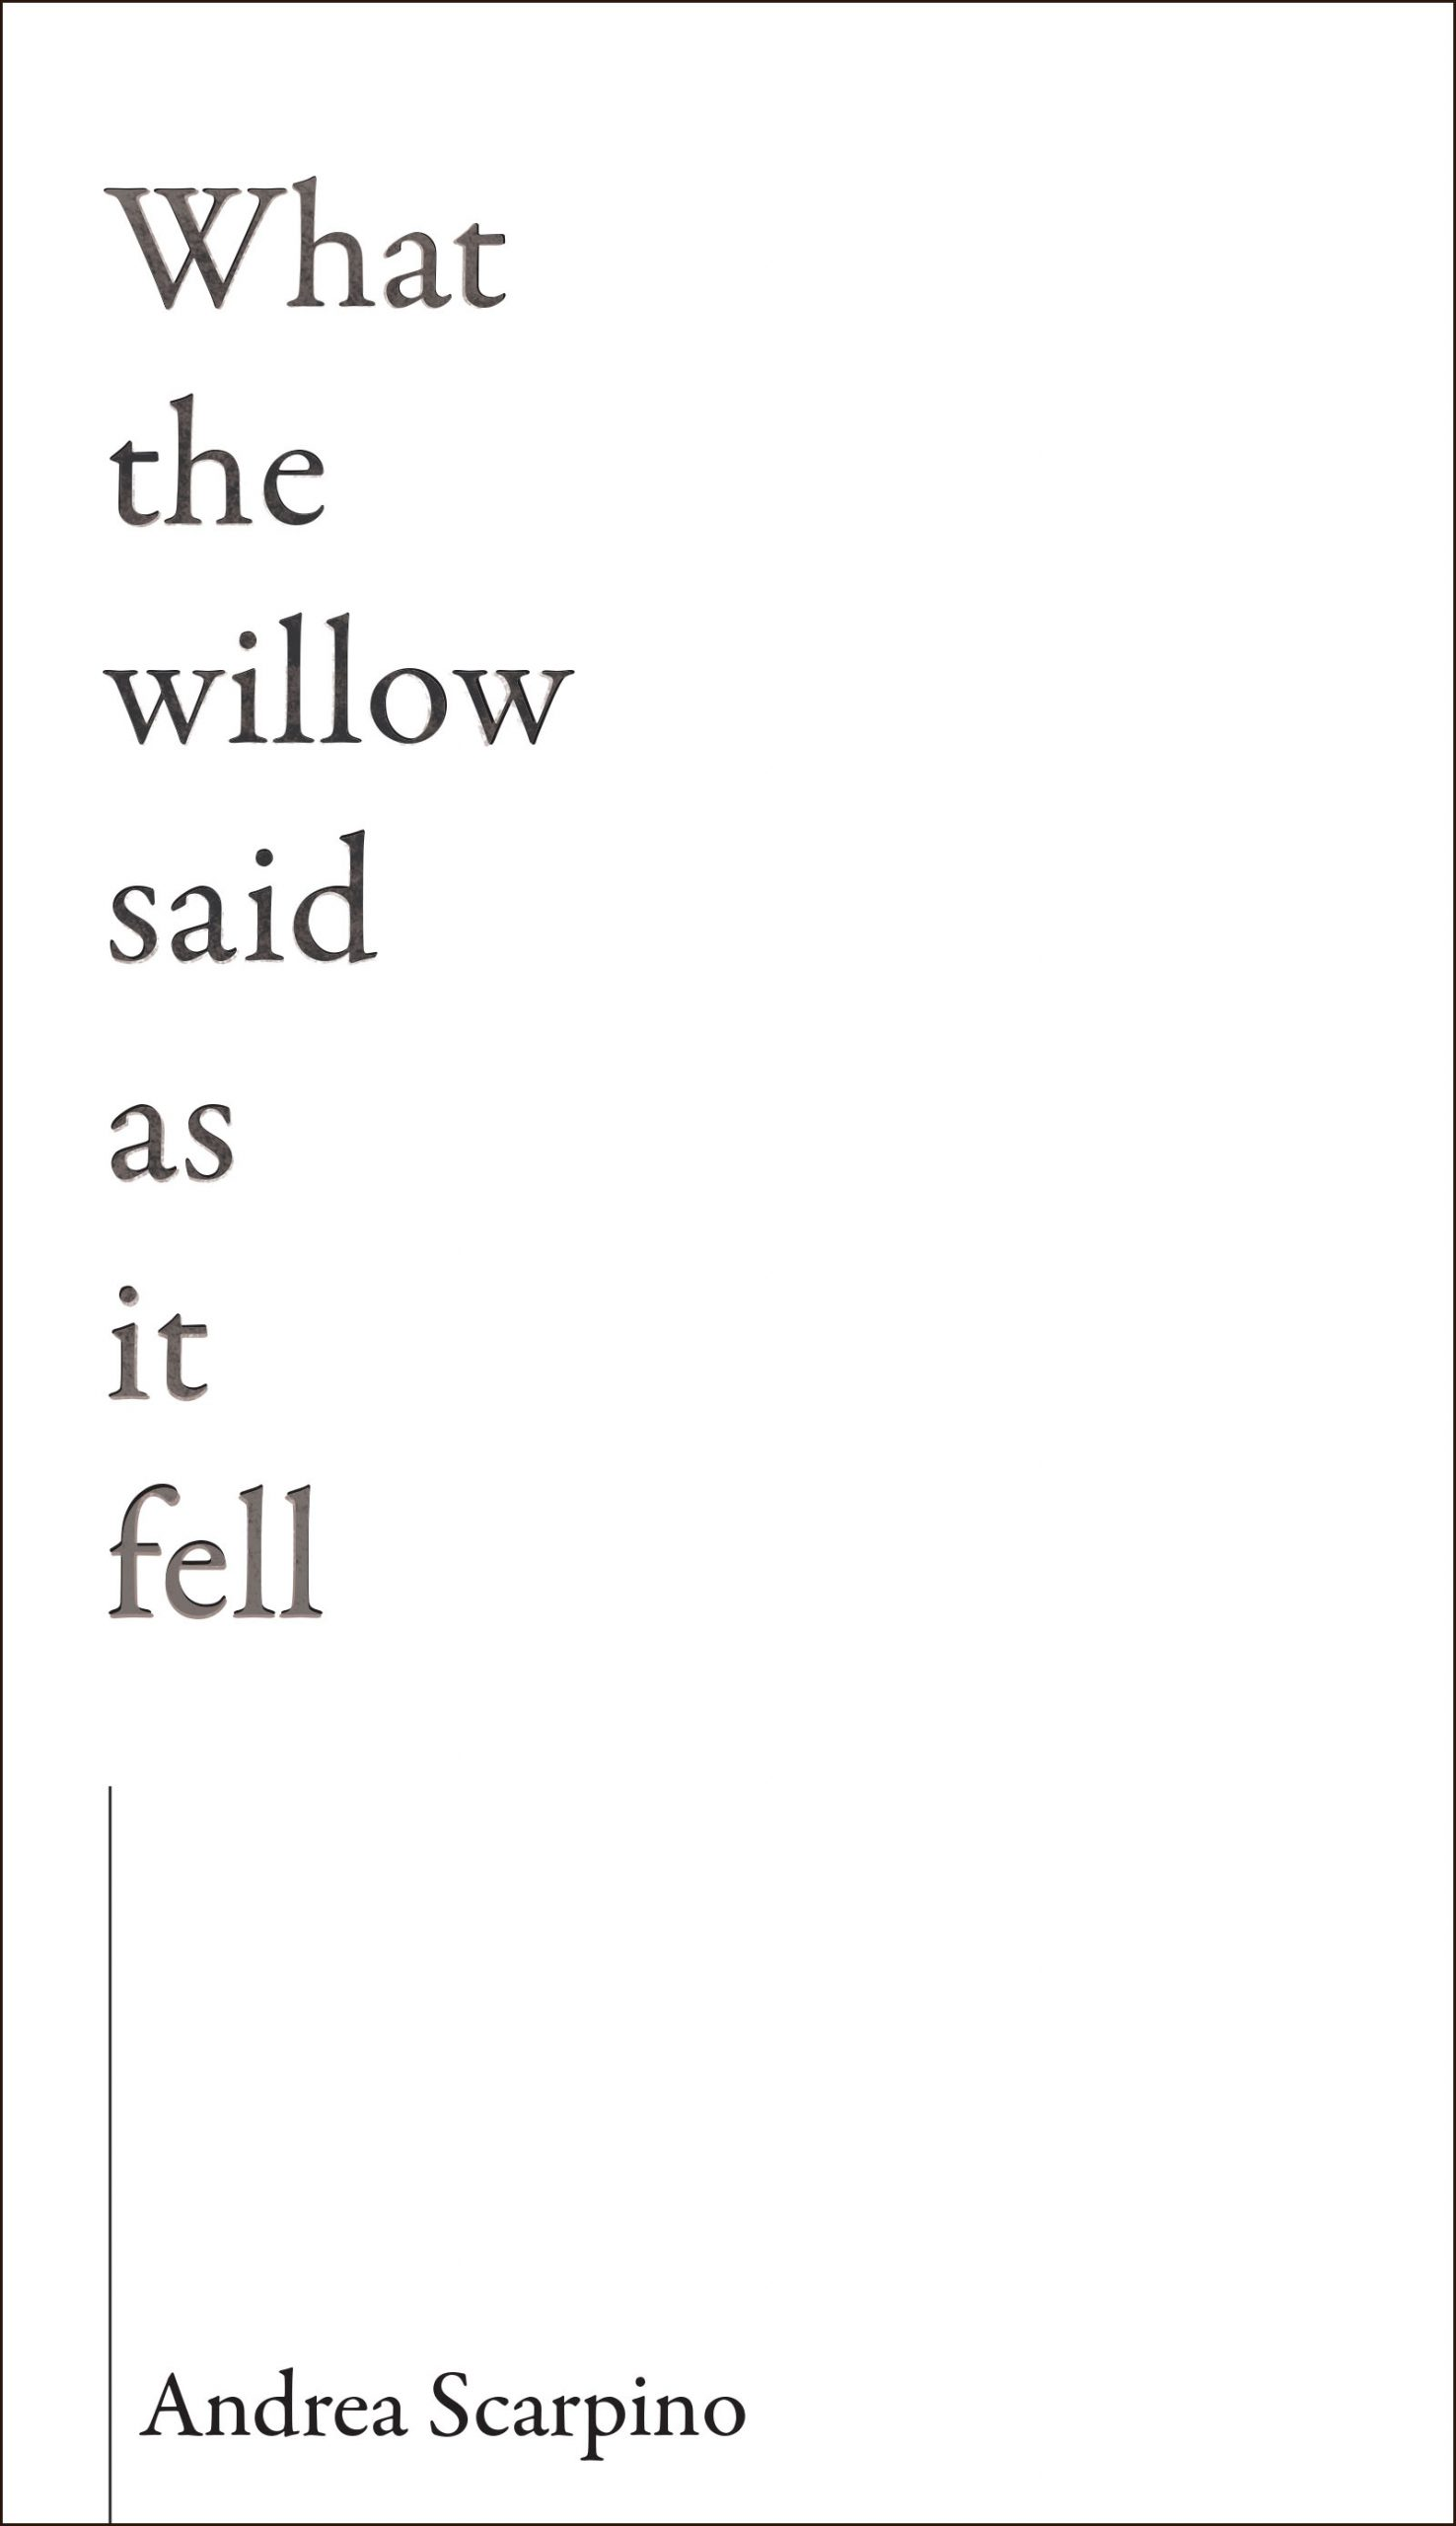 Black lettering flows down a blank white cover with one word on each line reading What the willow said as it fell by Andrea Scarpino.